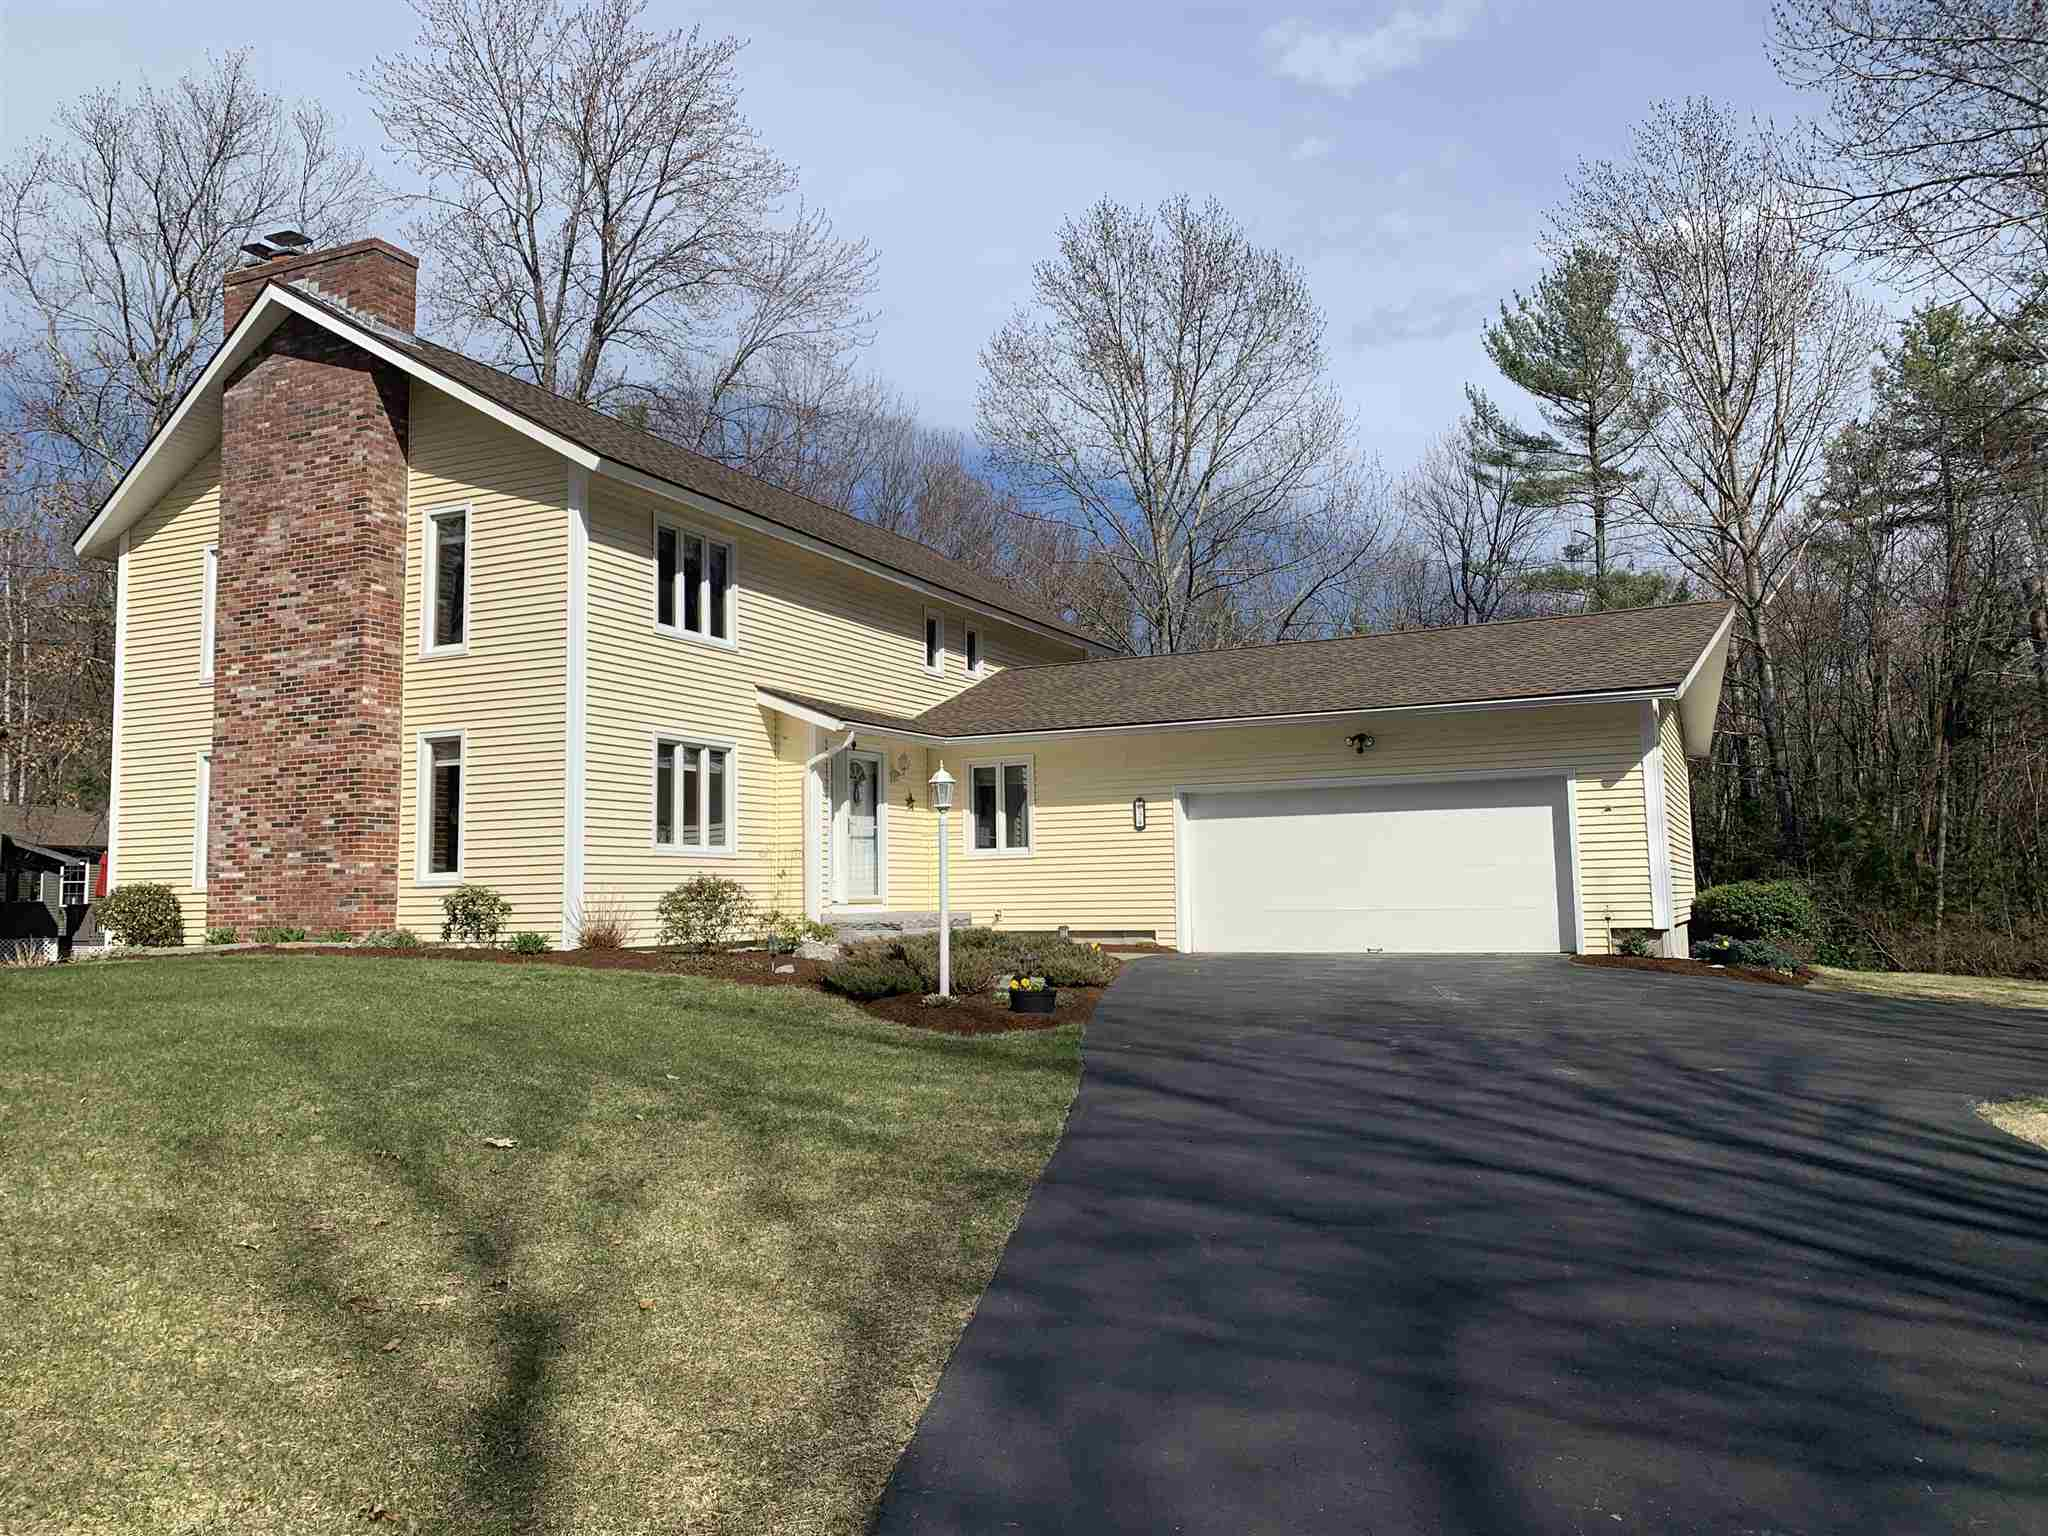 Photo of 34 Mulberry Lane Bedford, NH 03110